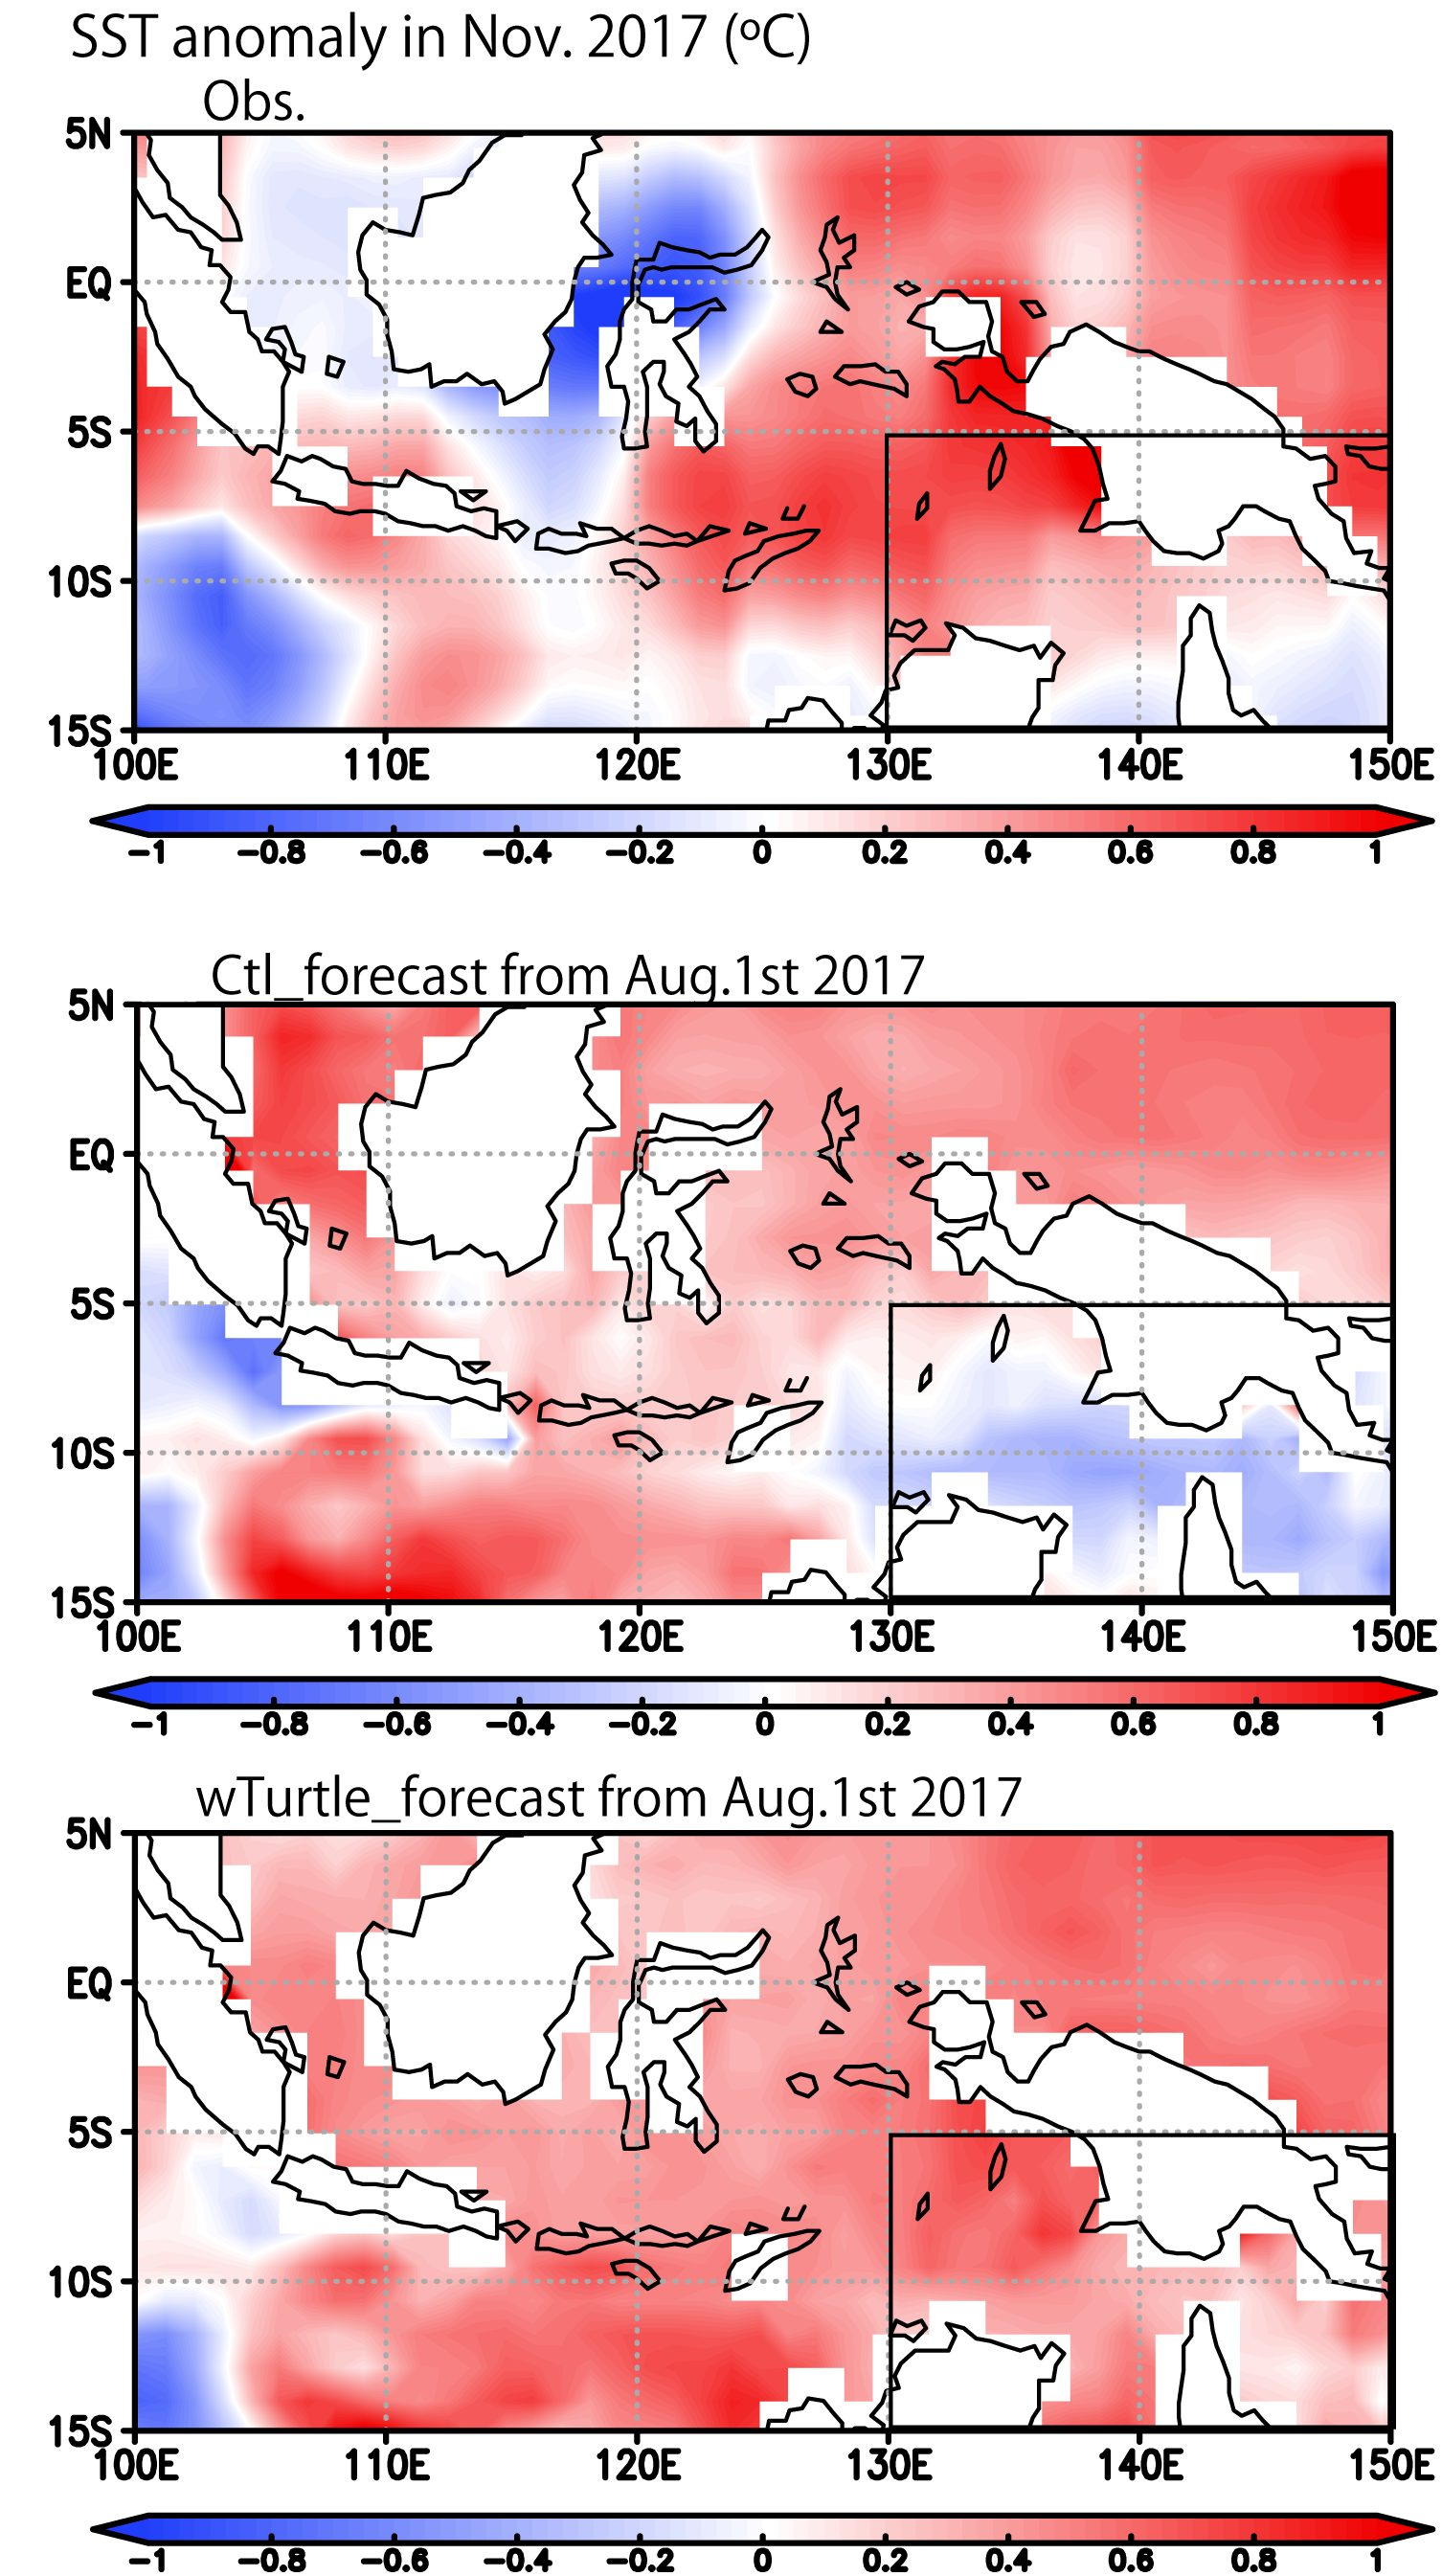 Sea Surface Temperature anomalies with respect to the seasonal means. Top, the satellite observation on November 2017. Middle, output of the model assimilating the automated systems only; bottom output of the model assimilating also the turtles' data. The run with the turtles' data, higher by 0.2°C than the one without in the black-lined area at the South-East corner, is closer to the measurements done at that time (credit Japan Agency for Marine-Earth Science and Technology)